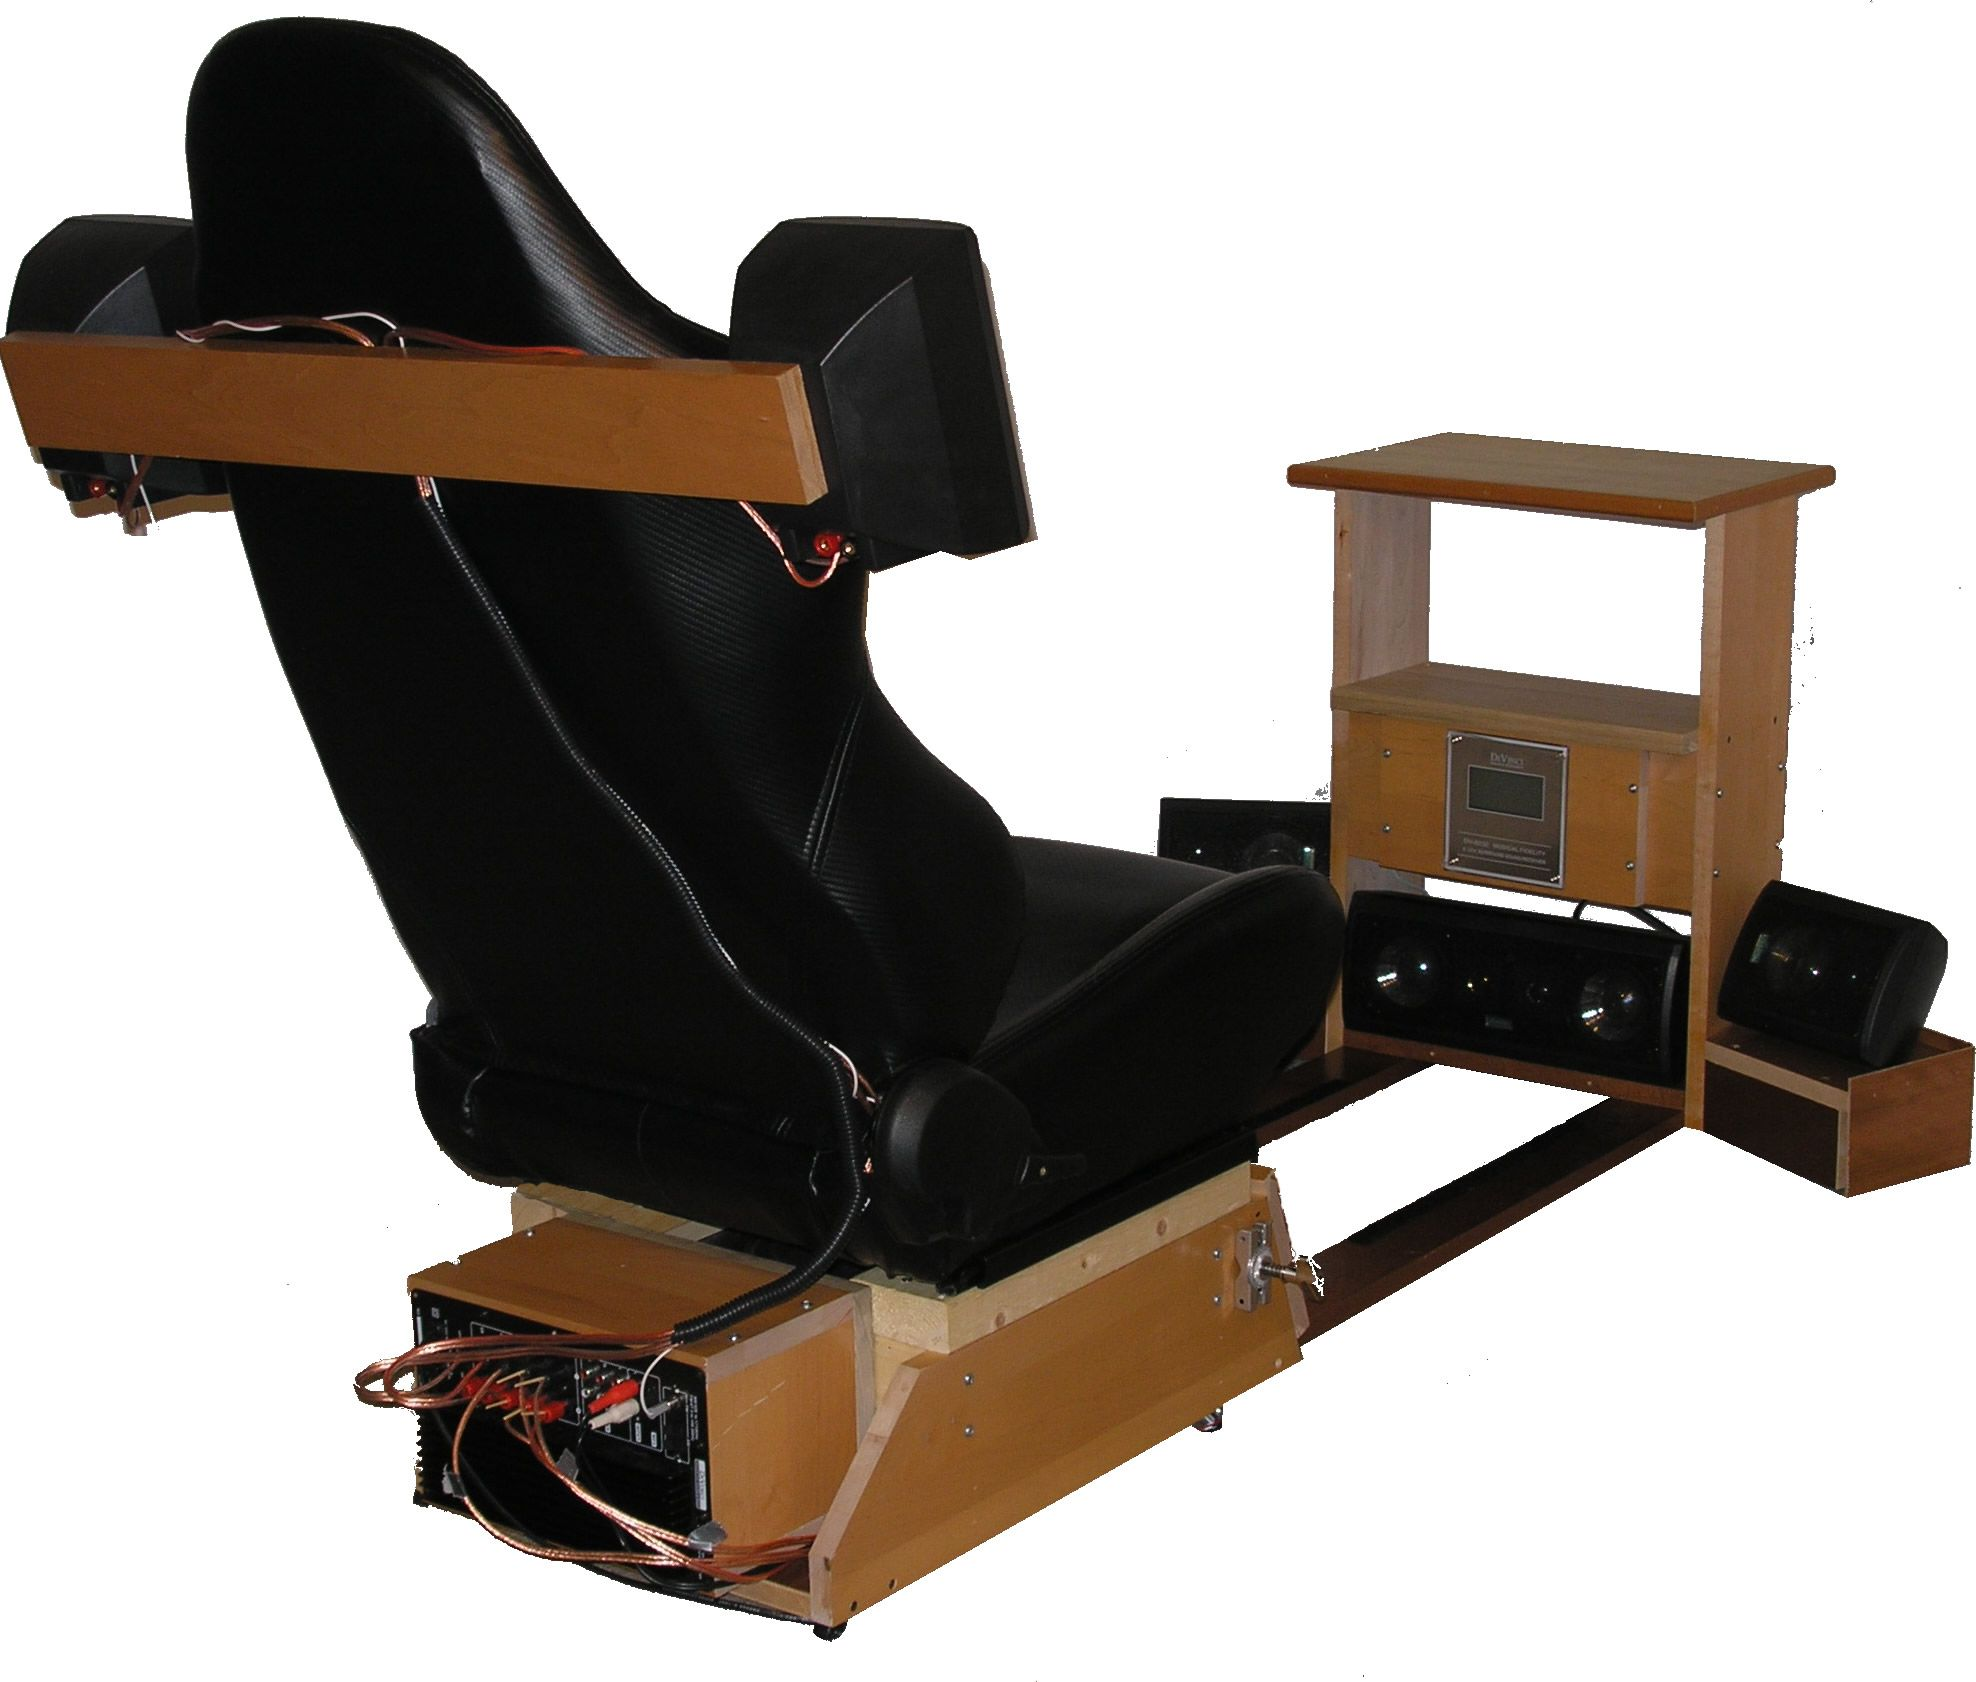 Artistic Gaming Chairs Setup With Wooden Frame By Monsta